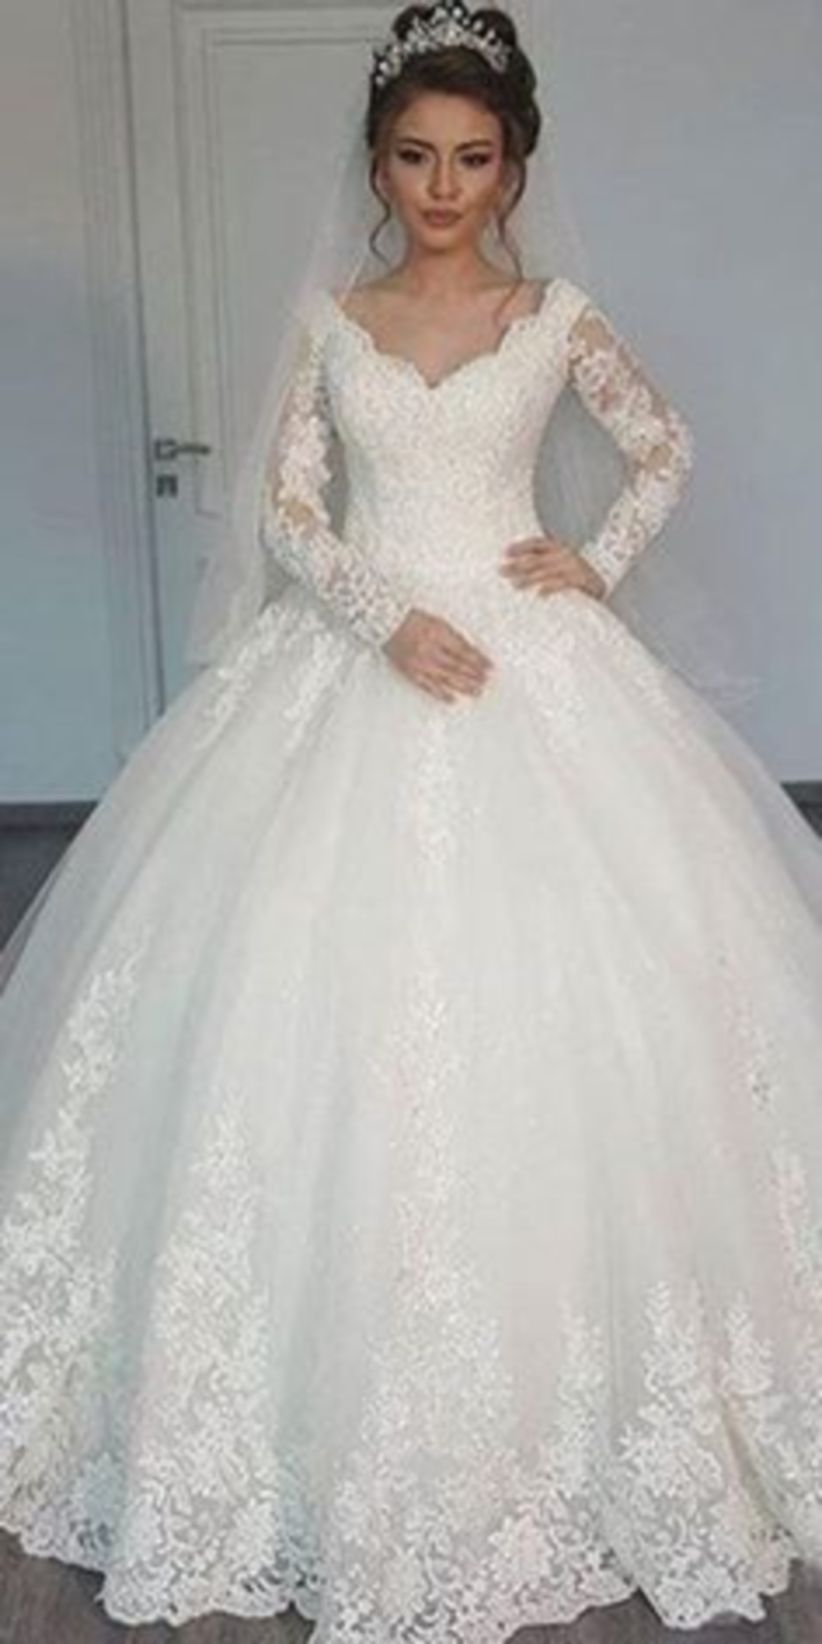 Awesome stunning wedding dress styles ideas suitabe for fall